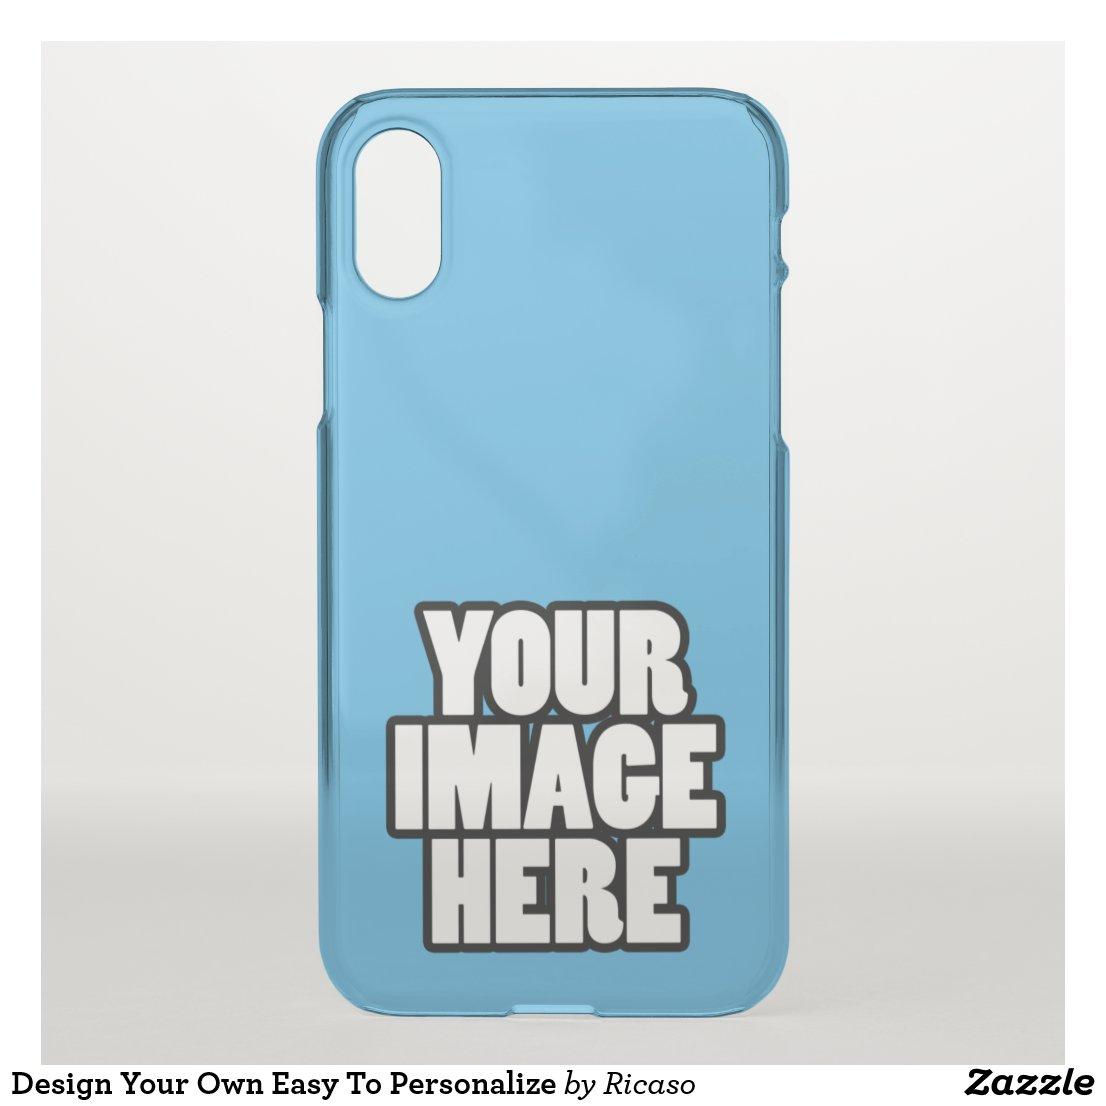 Design Your Own Easy To Personalize iPhone X Case